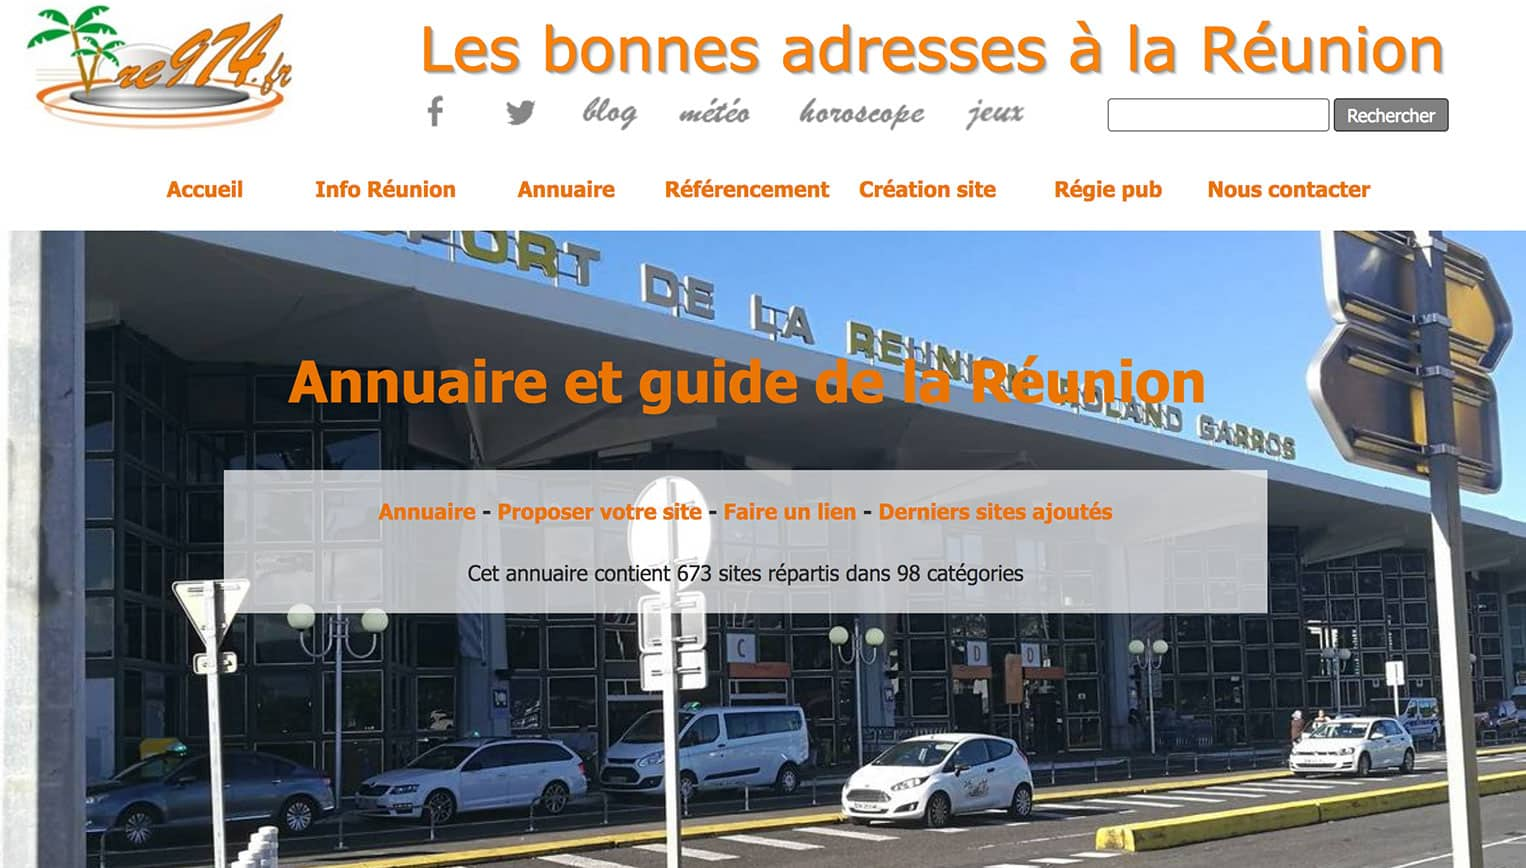 annuaire-referencement-ile-reunion